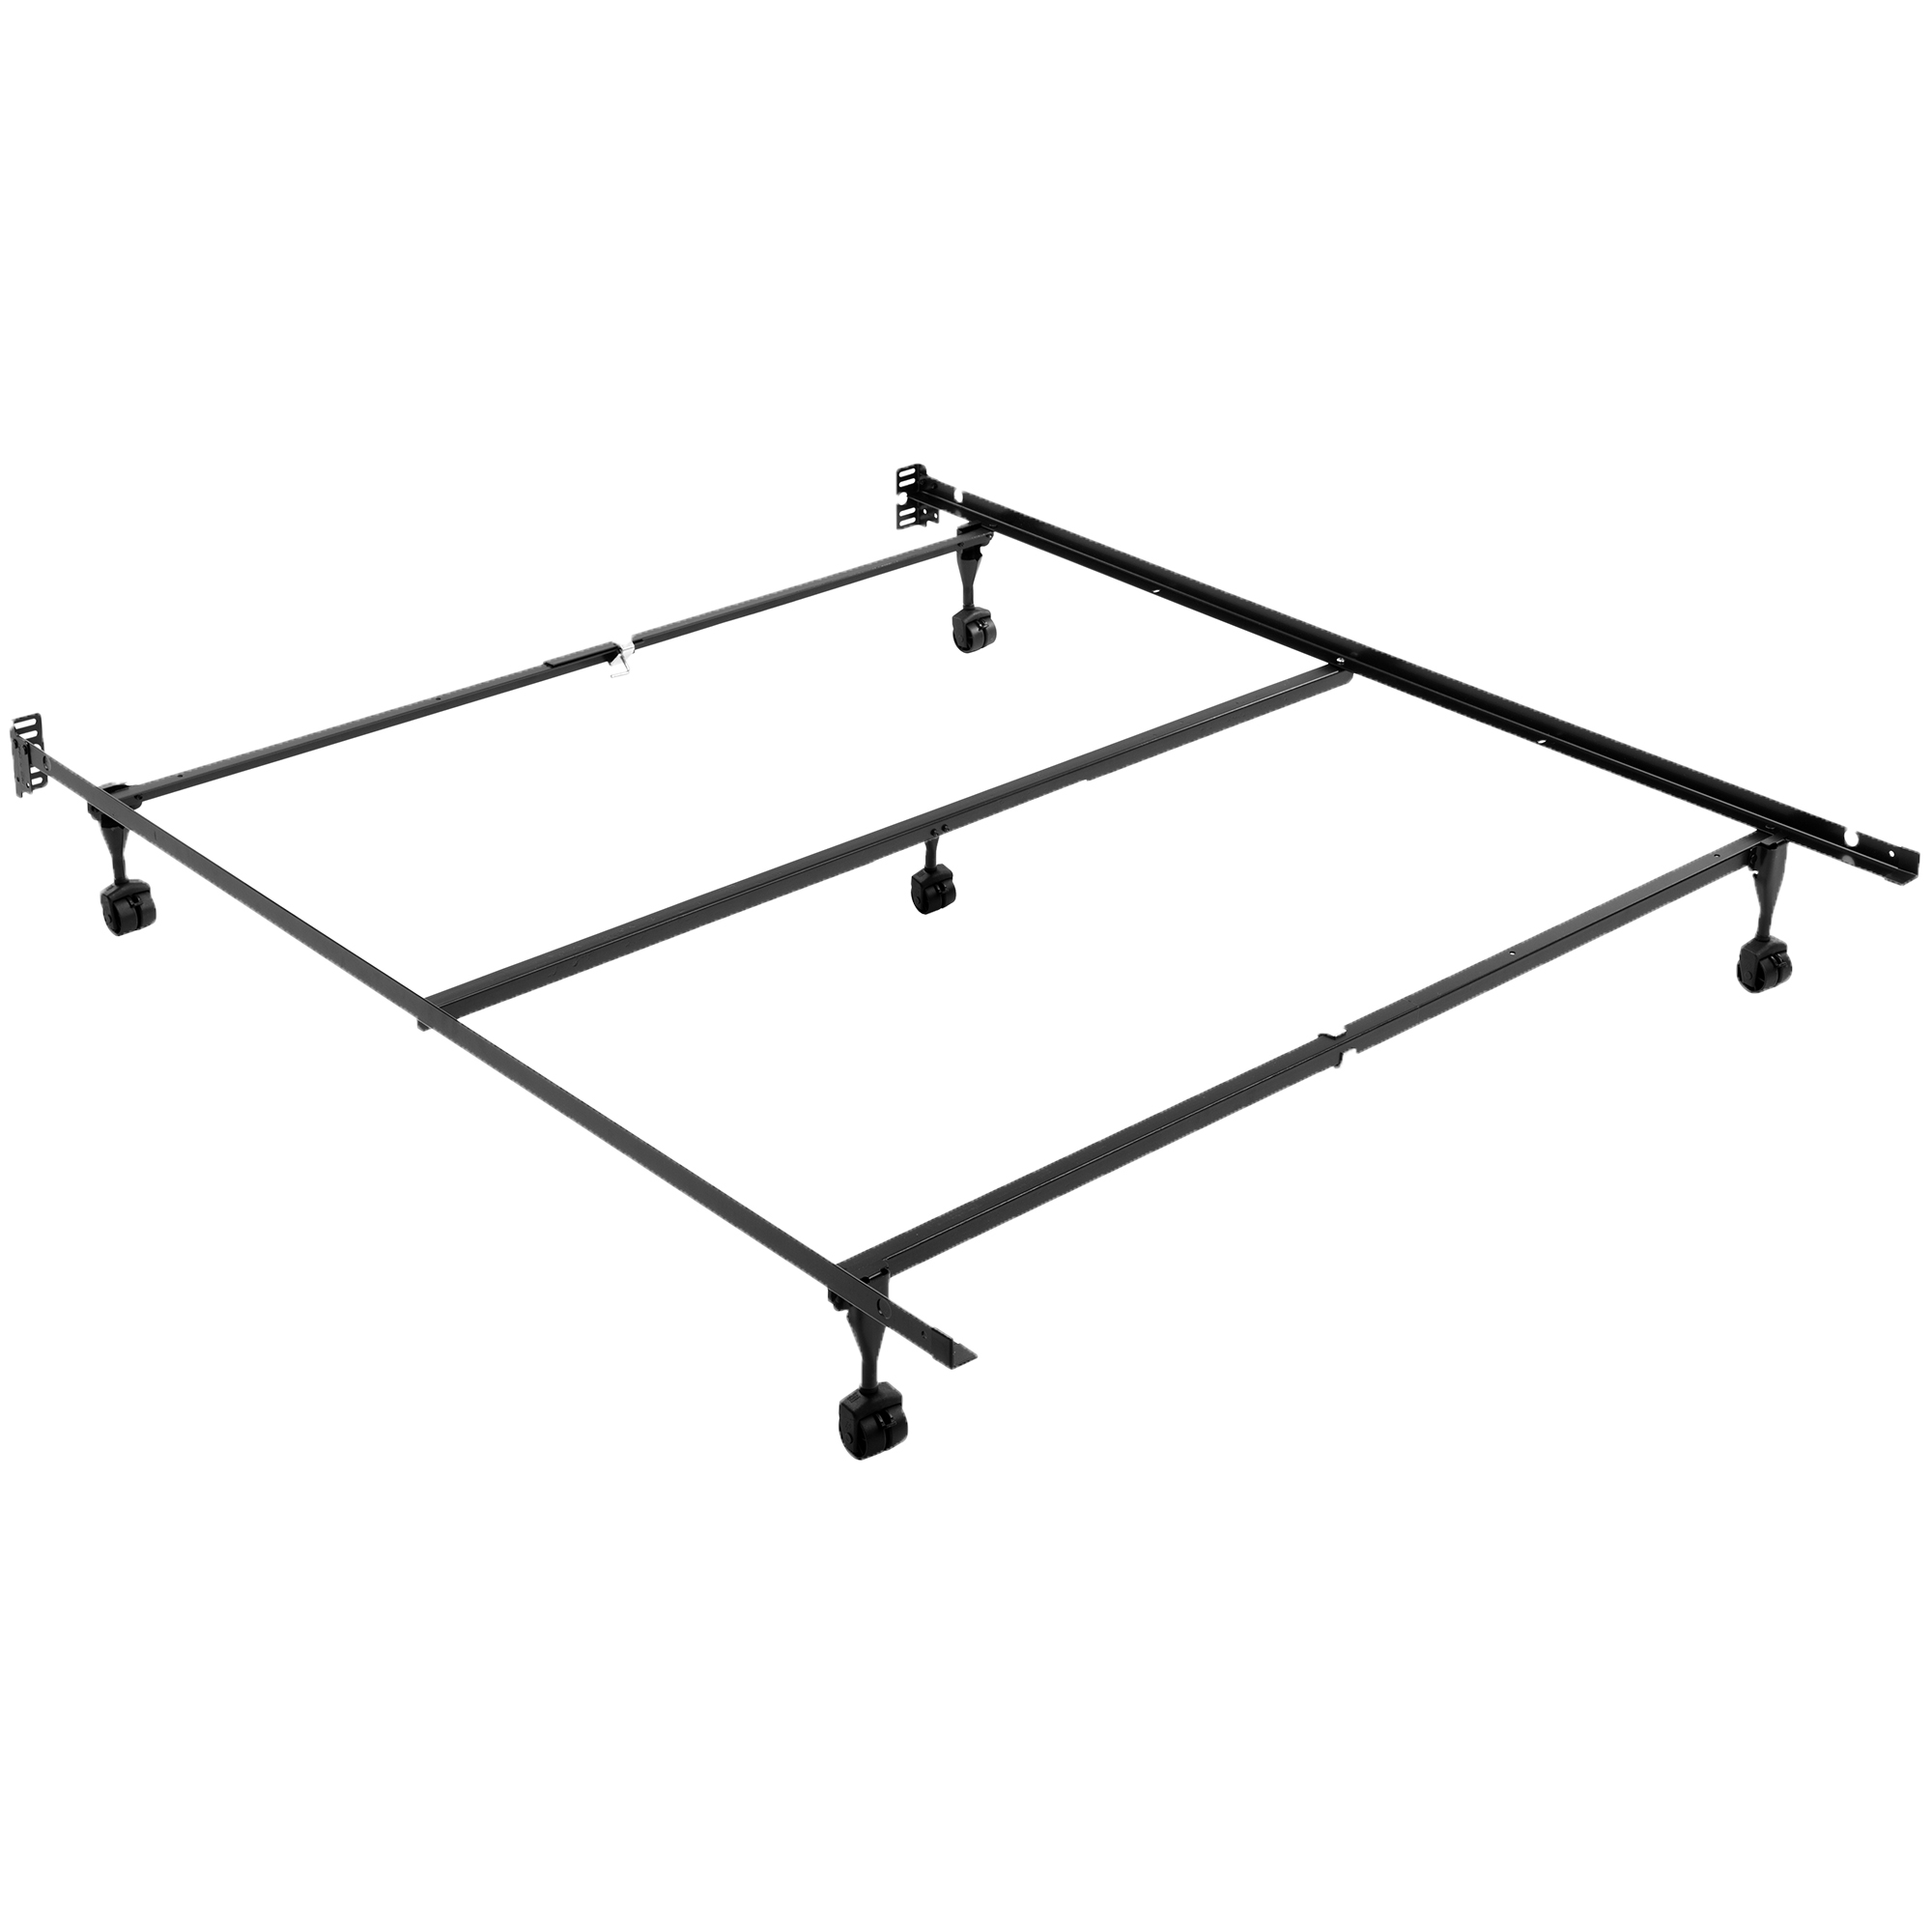 420812 Fashion Bed Group Sentry 7860 5r Adjustable Bed Frame With